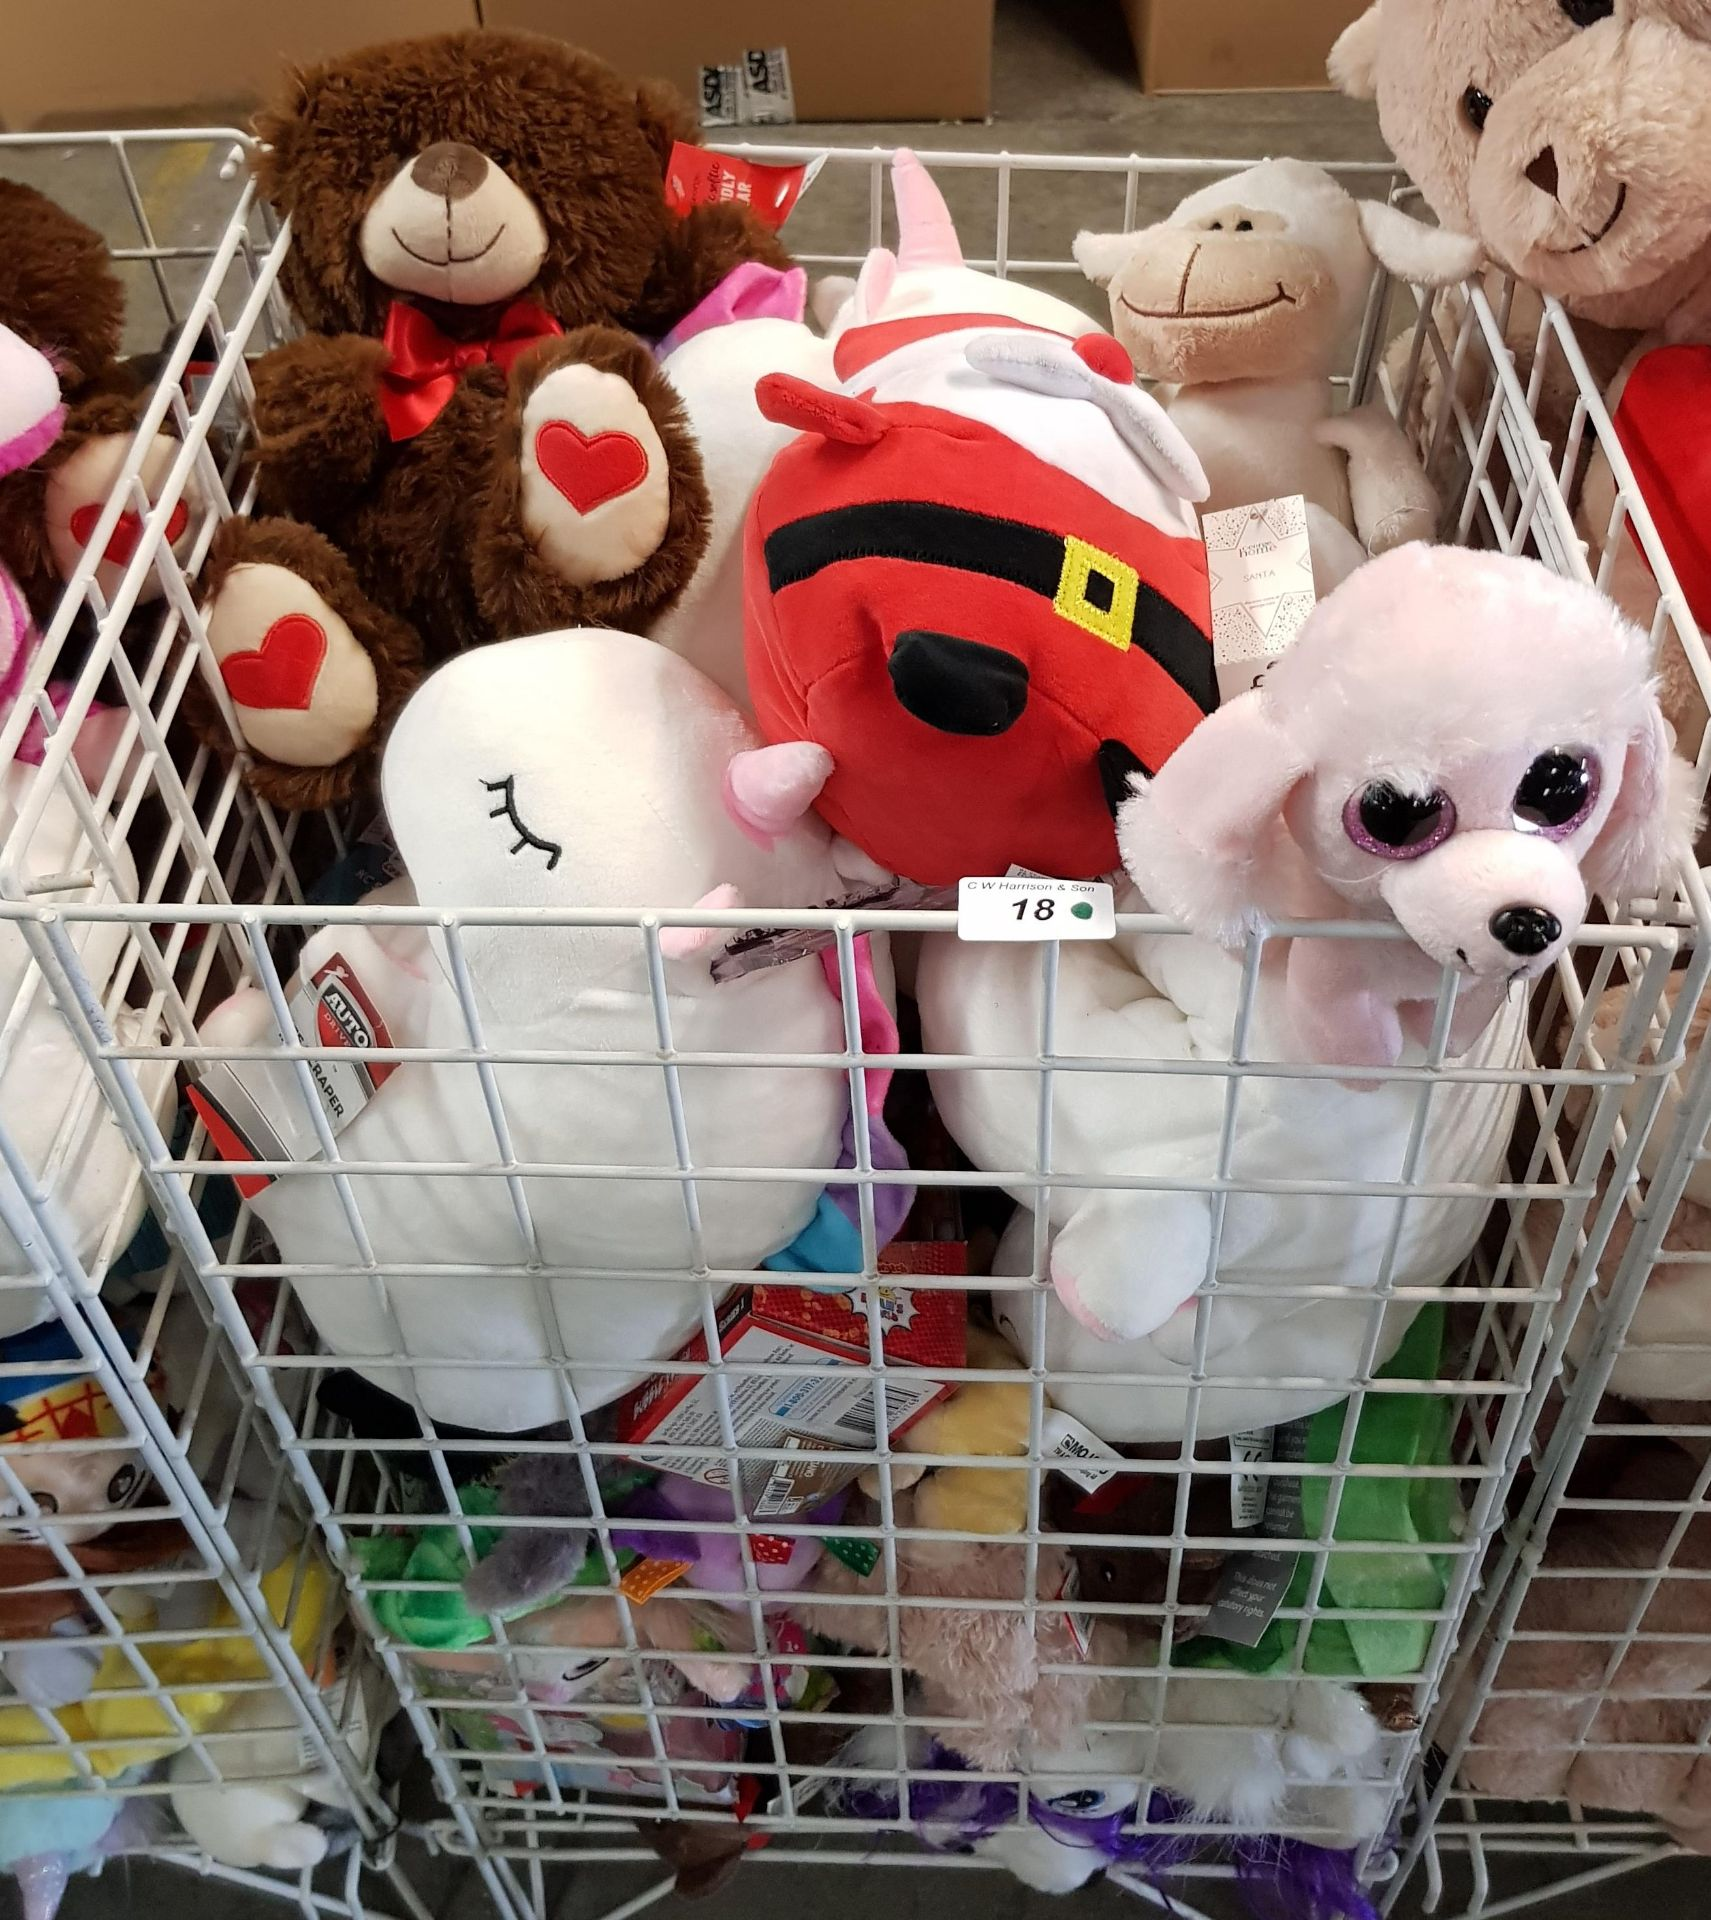 Lot 18 - CONTENTS OF CAGE - MIXED SOFT TOYS